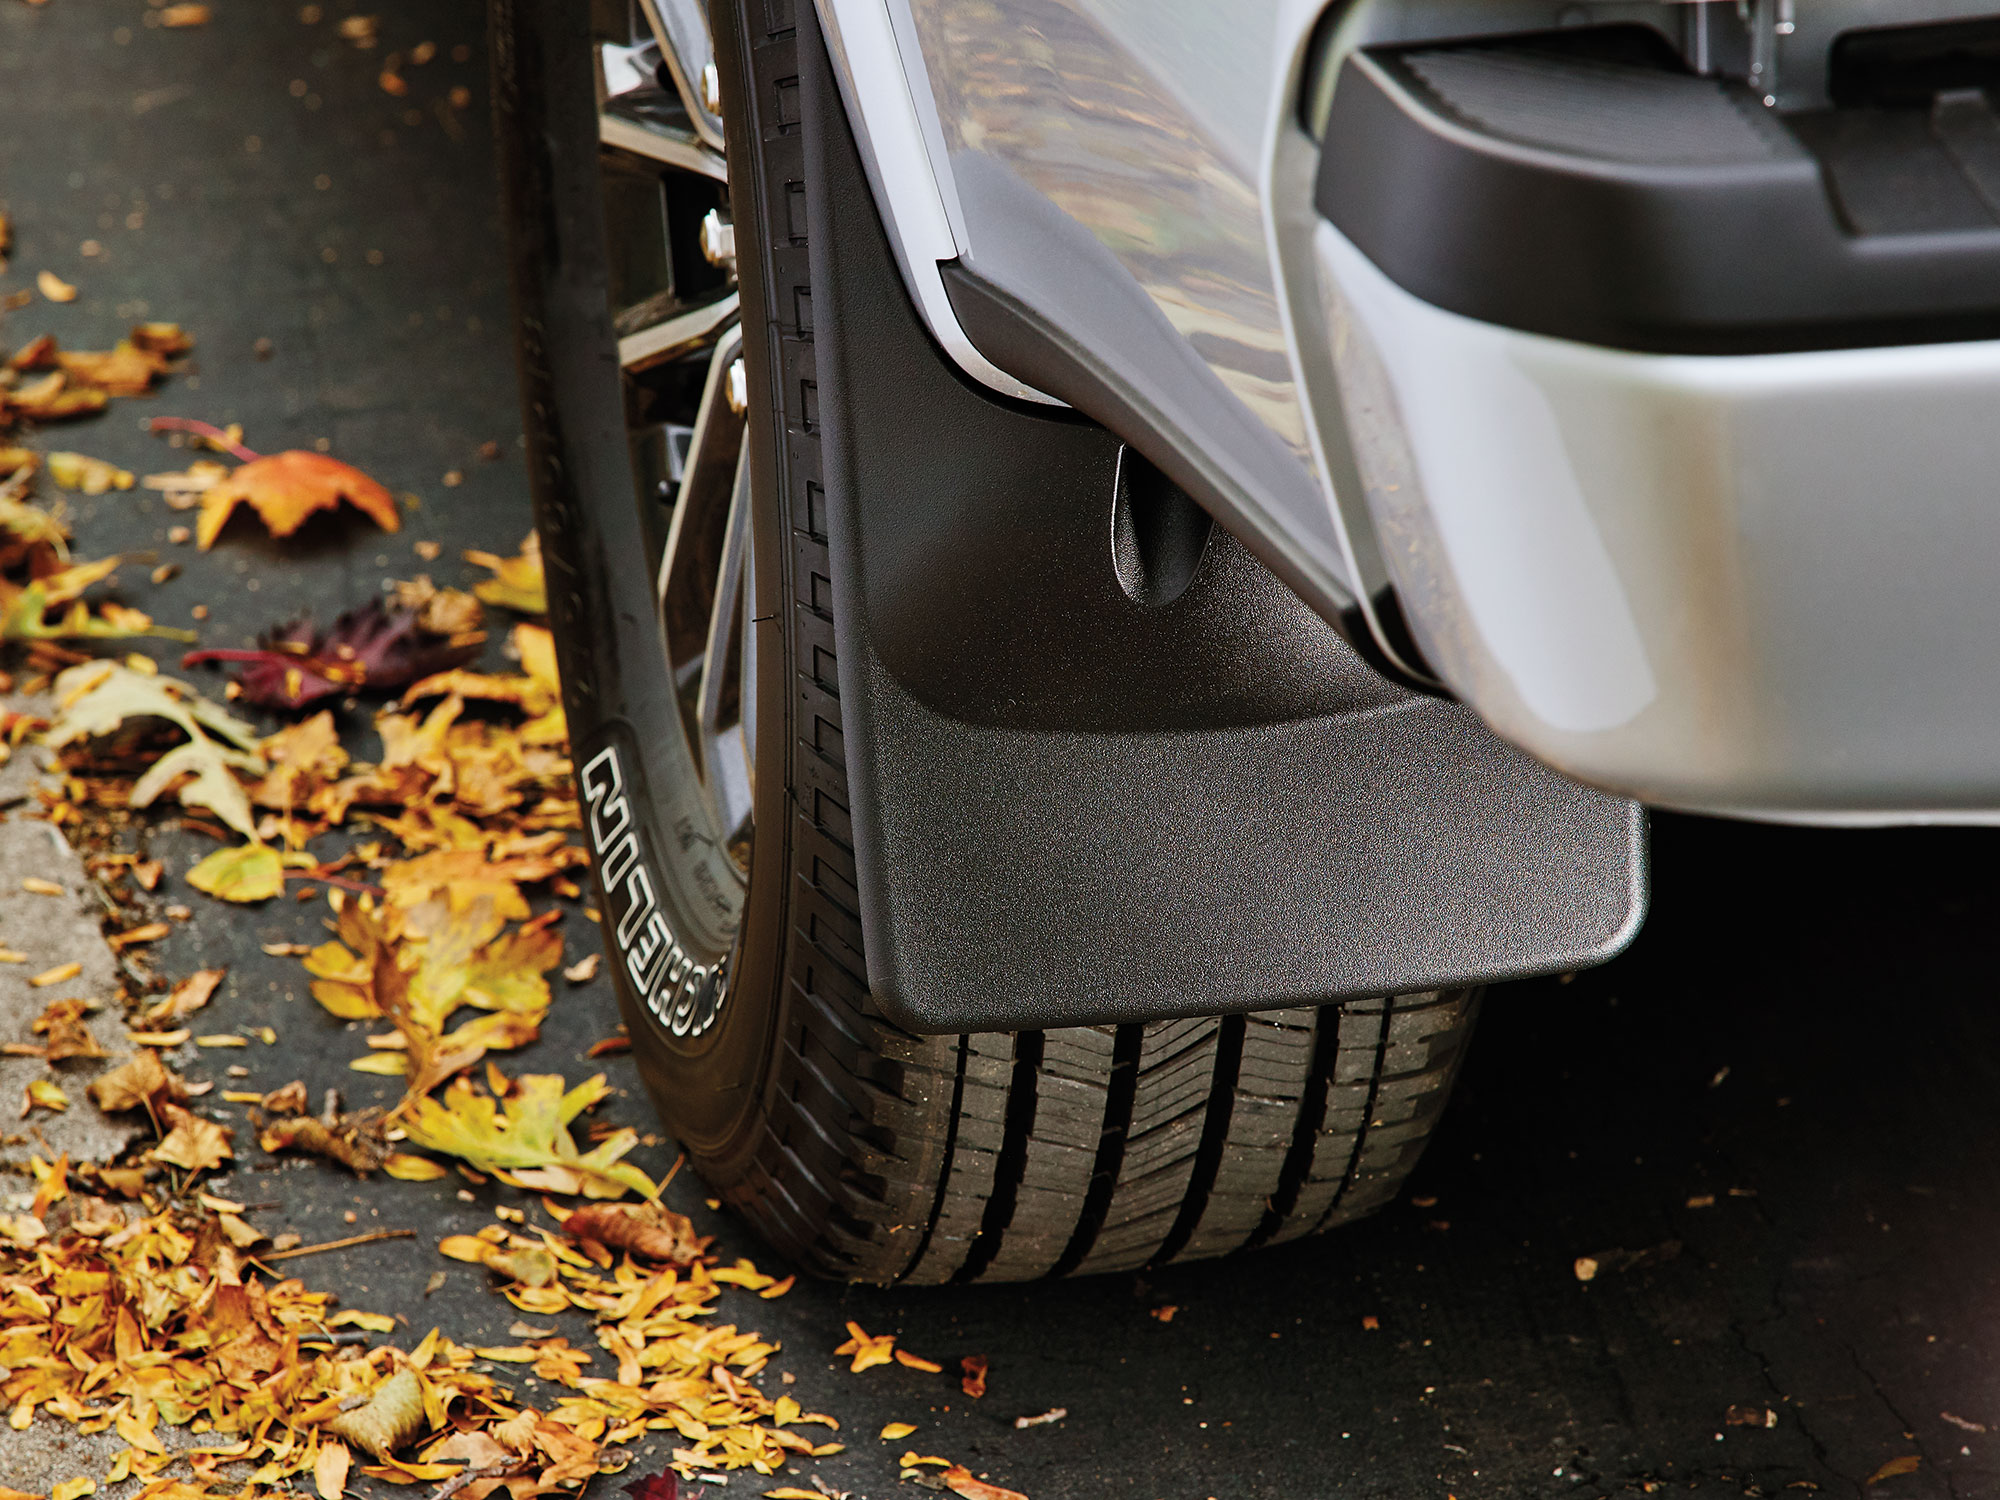 WeatherTech MudFlaps, mounted onto a silver SUV, help protect your fenders from rocks, mud, dirt and more!